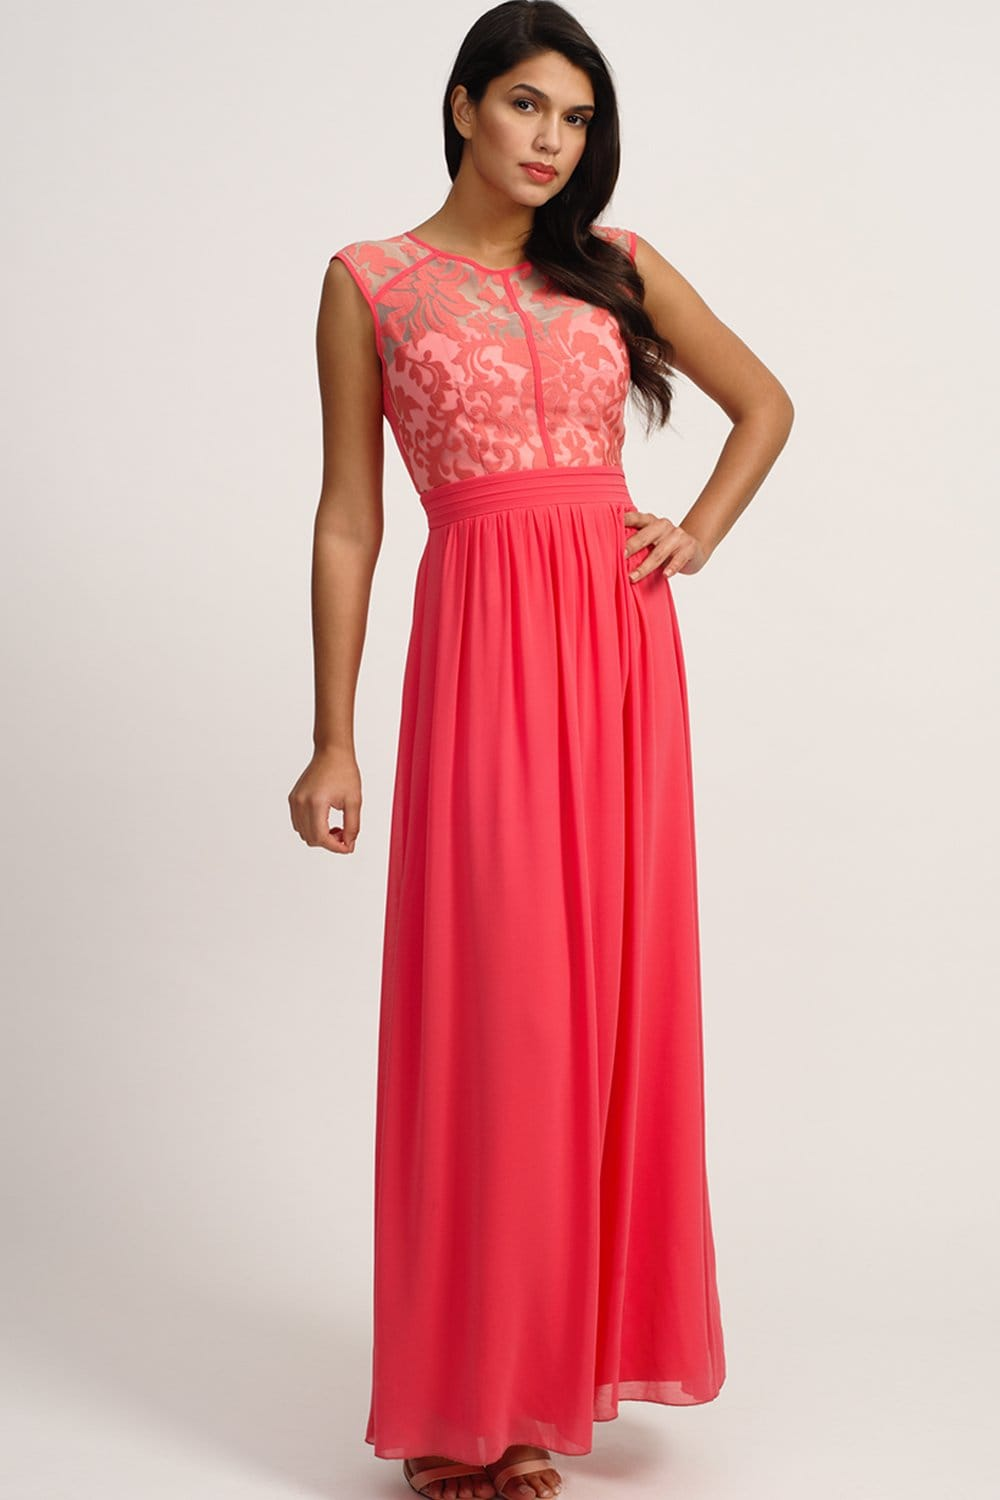 Little Mistress Coral Floral Flock Maxi Dress